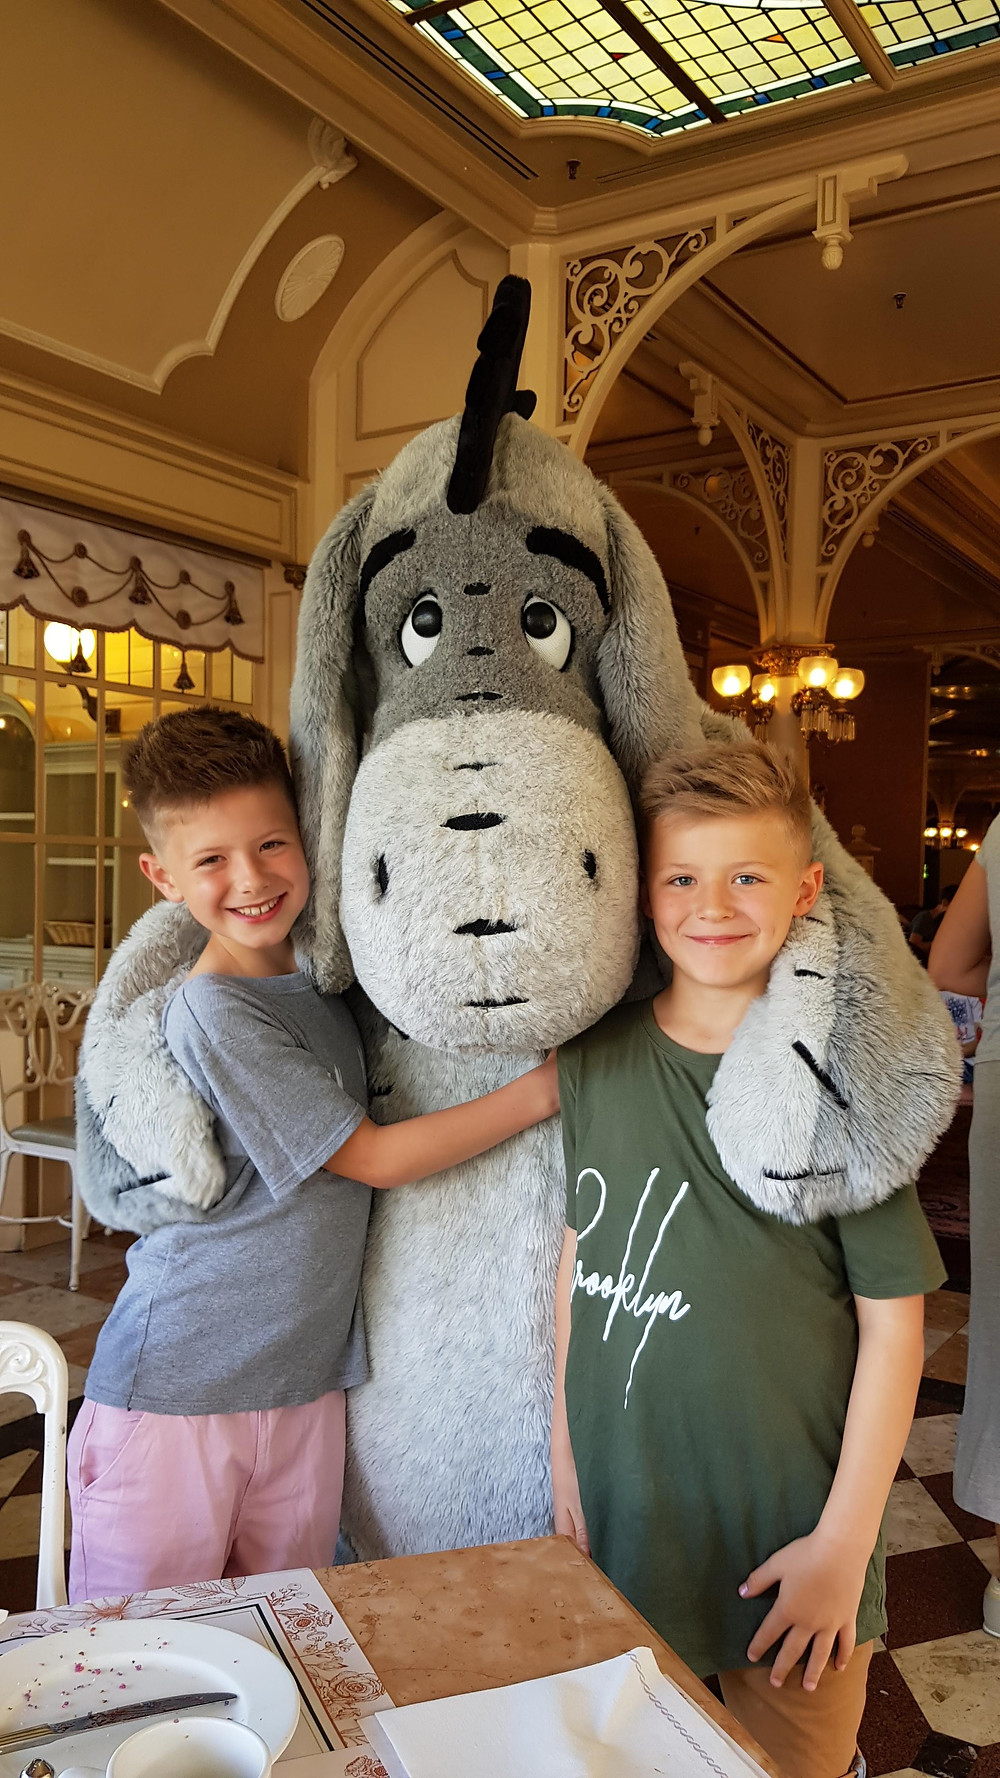 Daddy & Dad | Cuteness overload at the Character Breakfast at Disneyland Paris